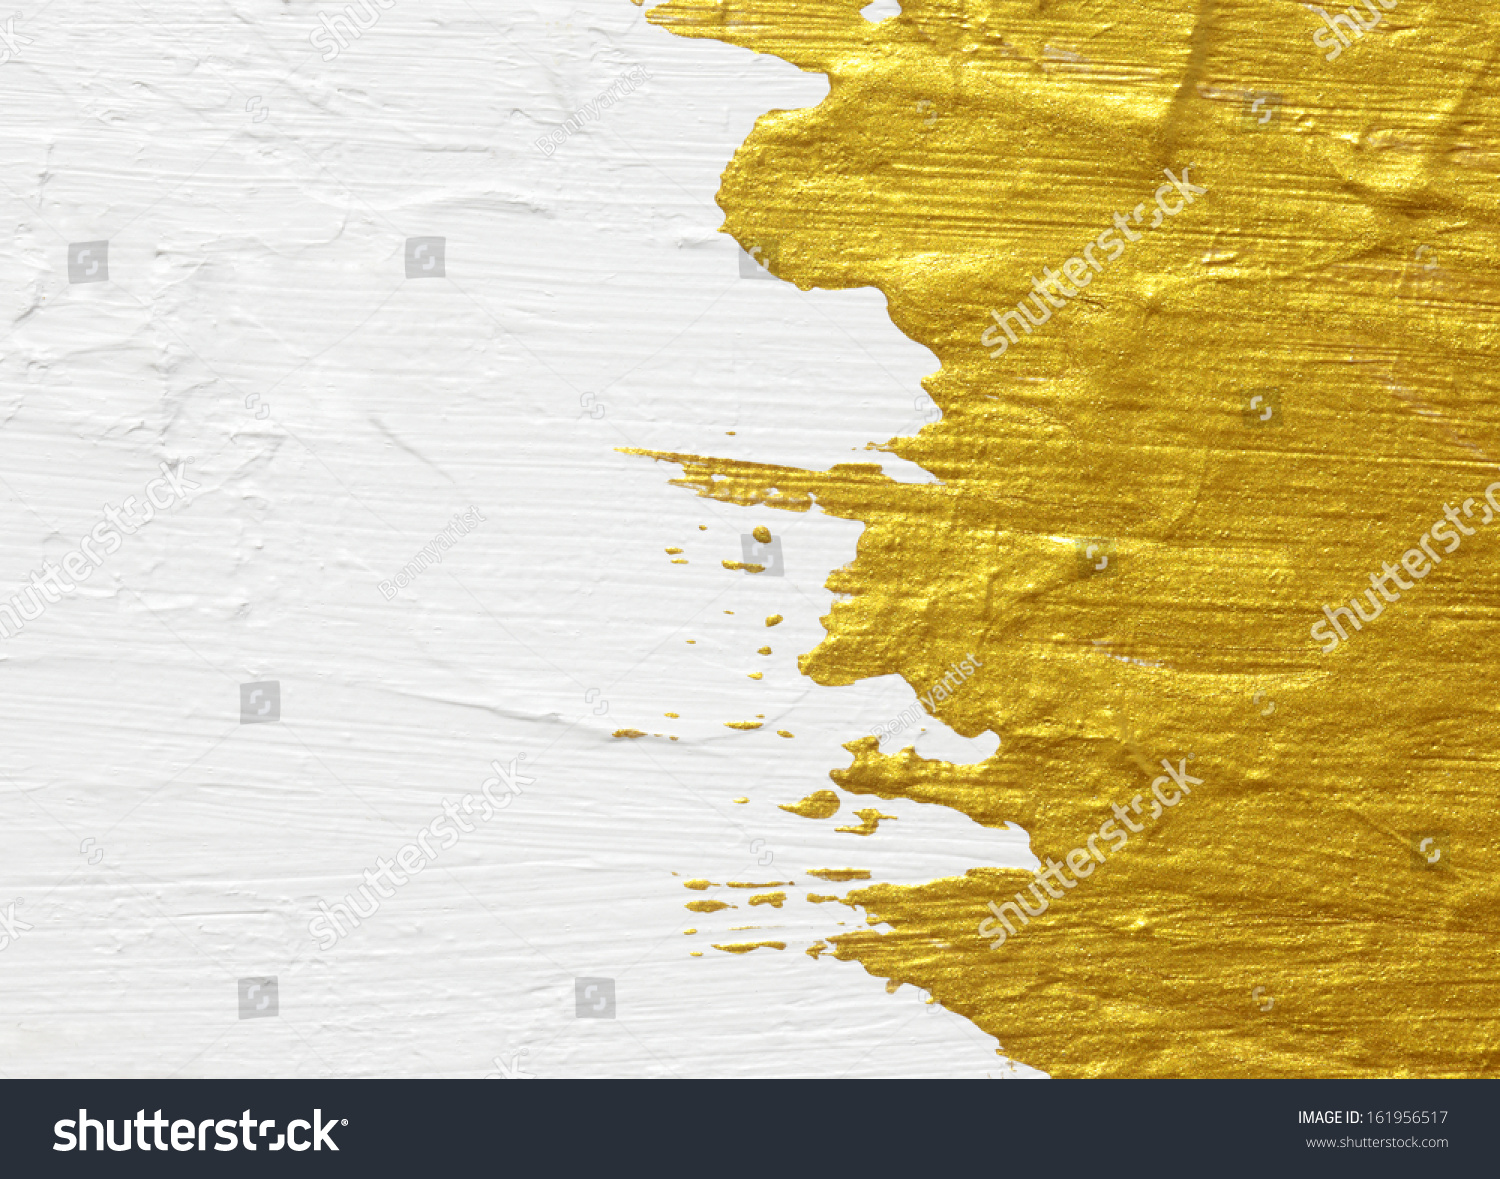 White Gold Acrylic Textured Painting Background Stock Photo ...